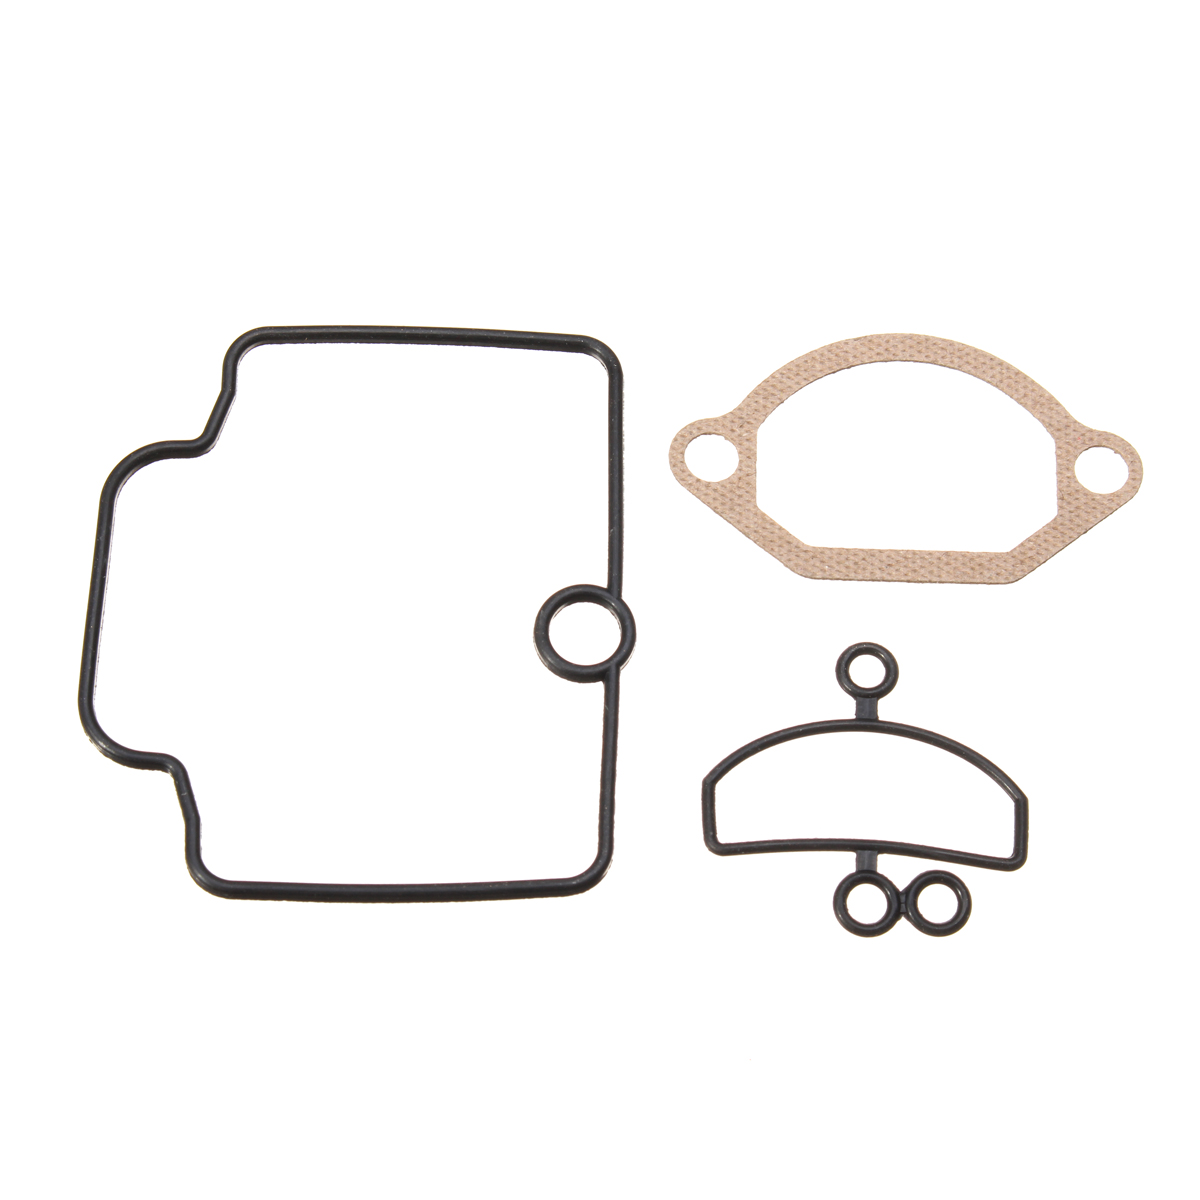 28mm Motorcycle Carburetor Repair Rebuild Kit For Pwk